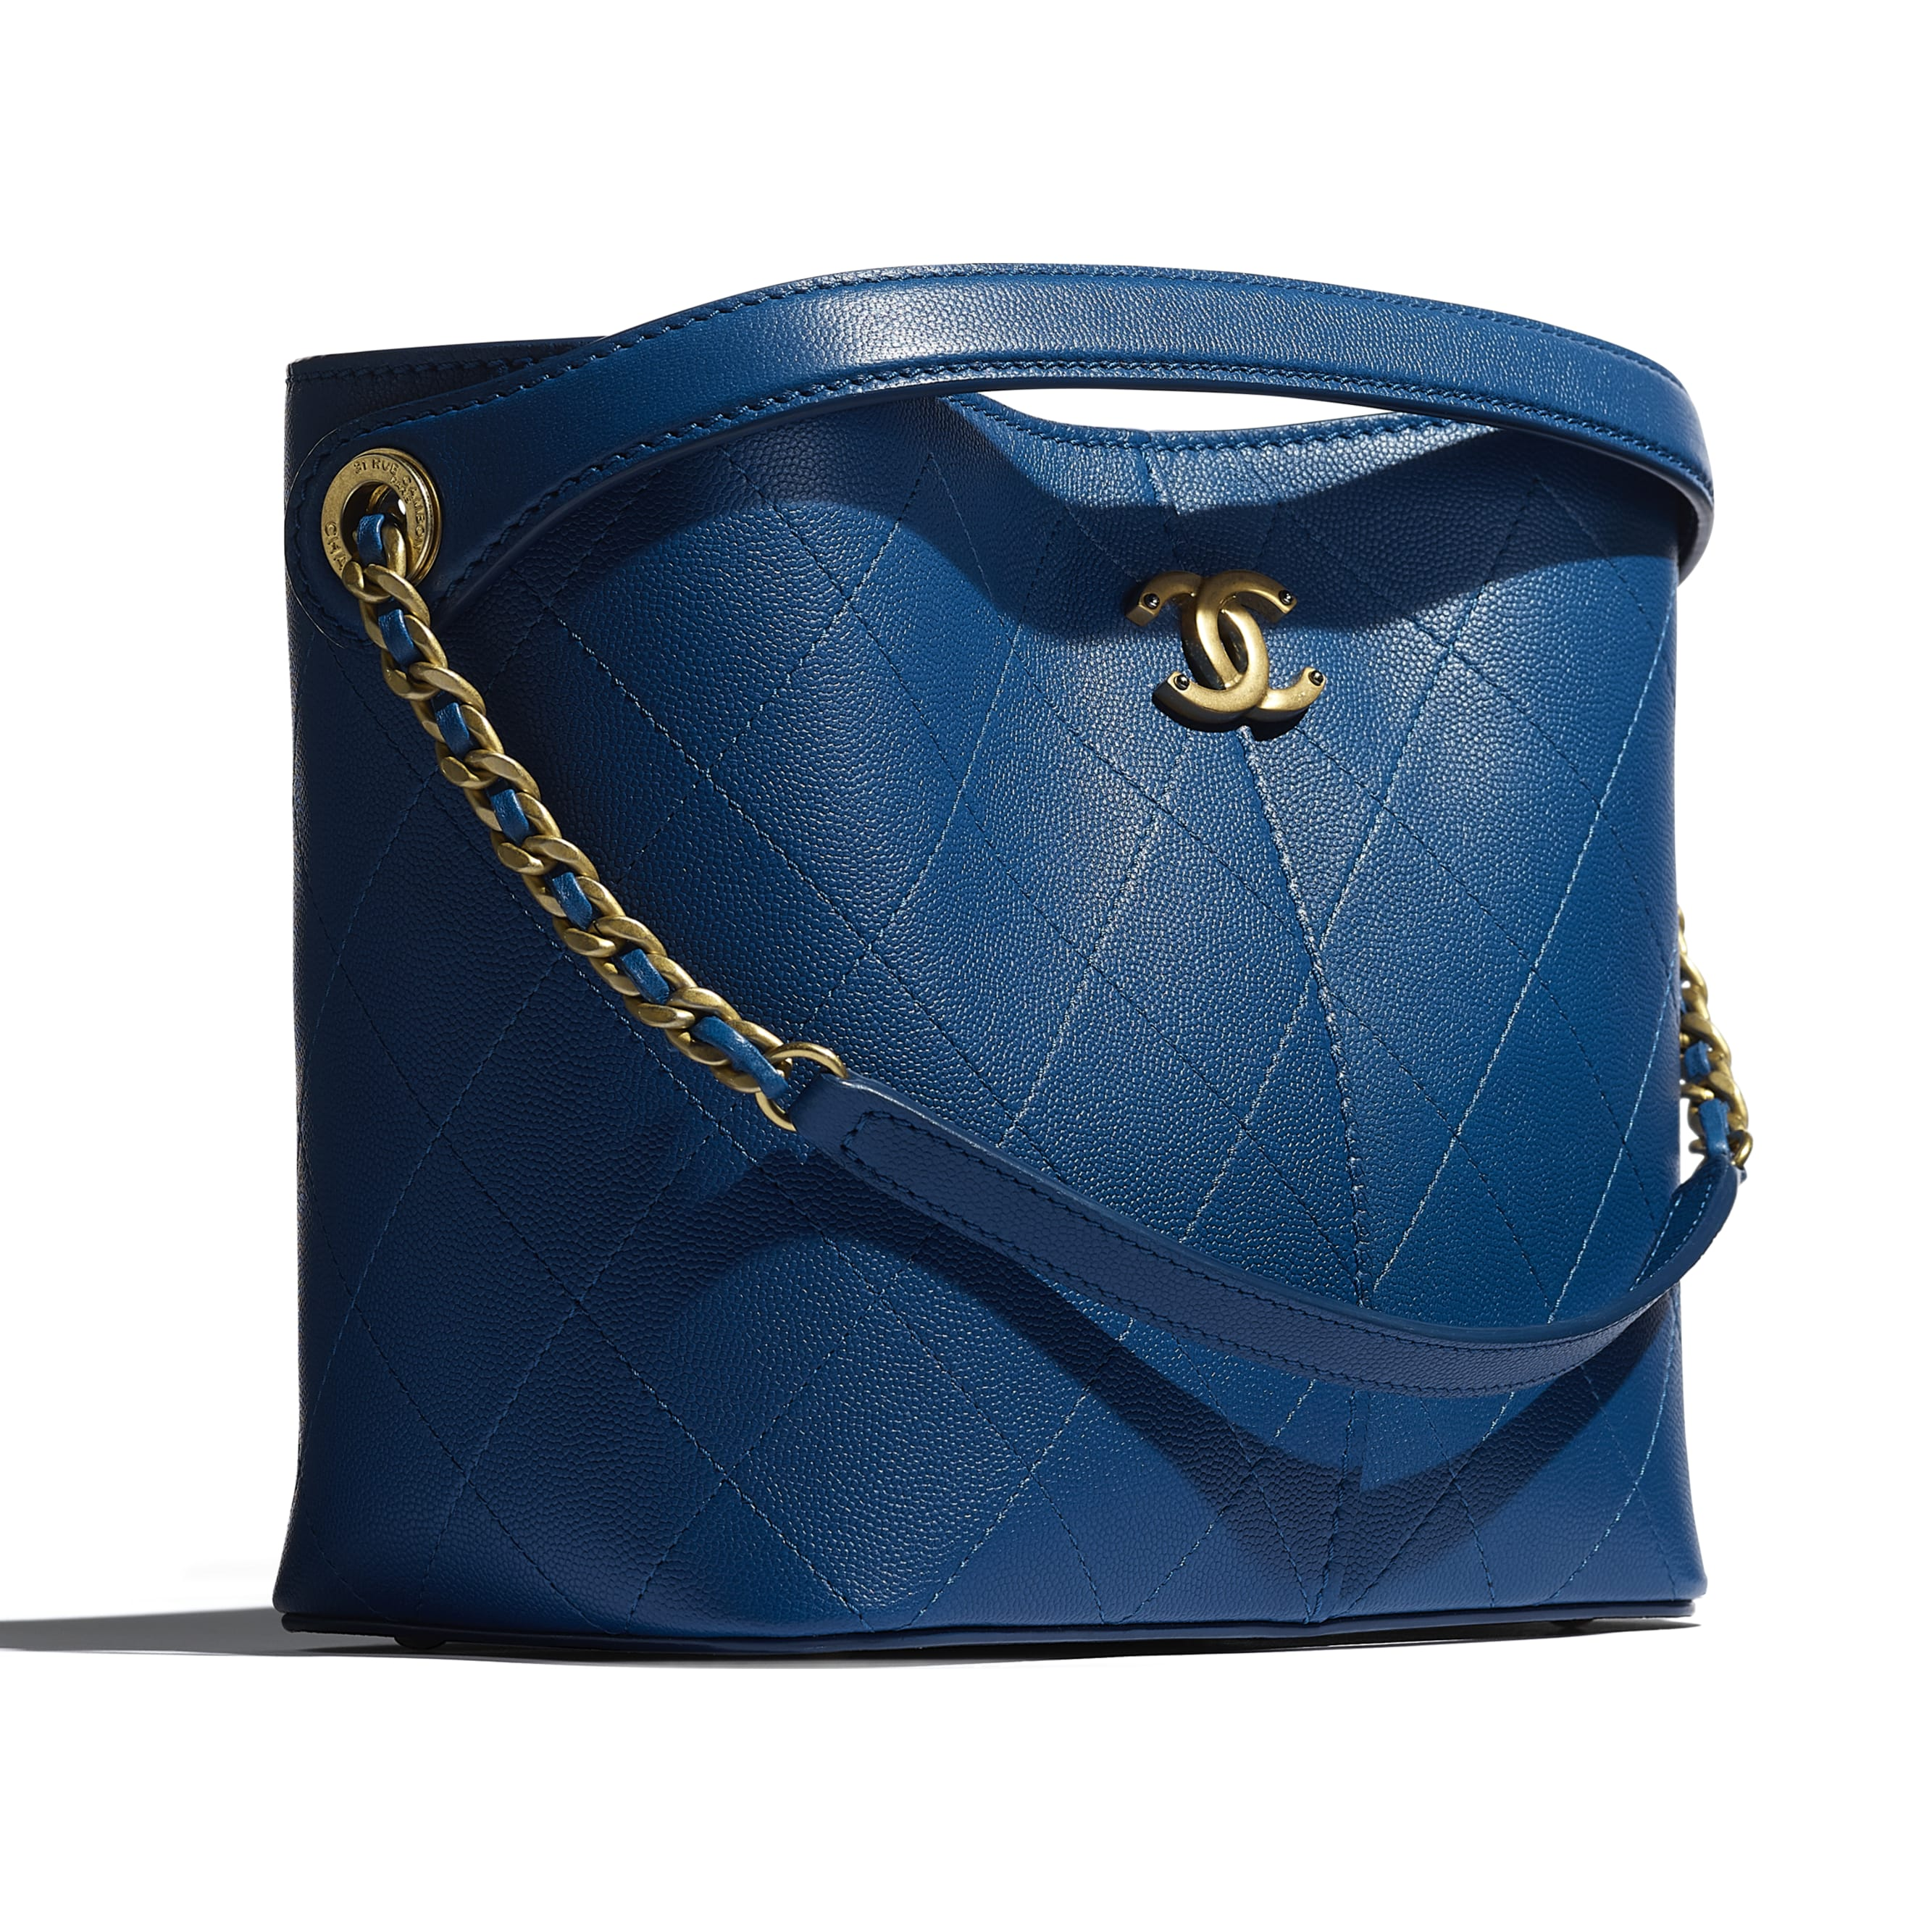 Small Tote - Blue - Grained Lambskin, Smooth Lambskin & Gold-Tone Metal - CHANEL - Extra view - see standard sized version